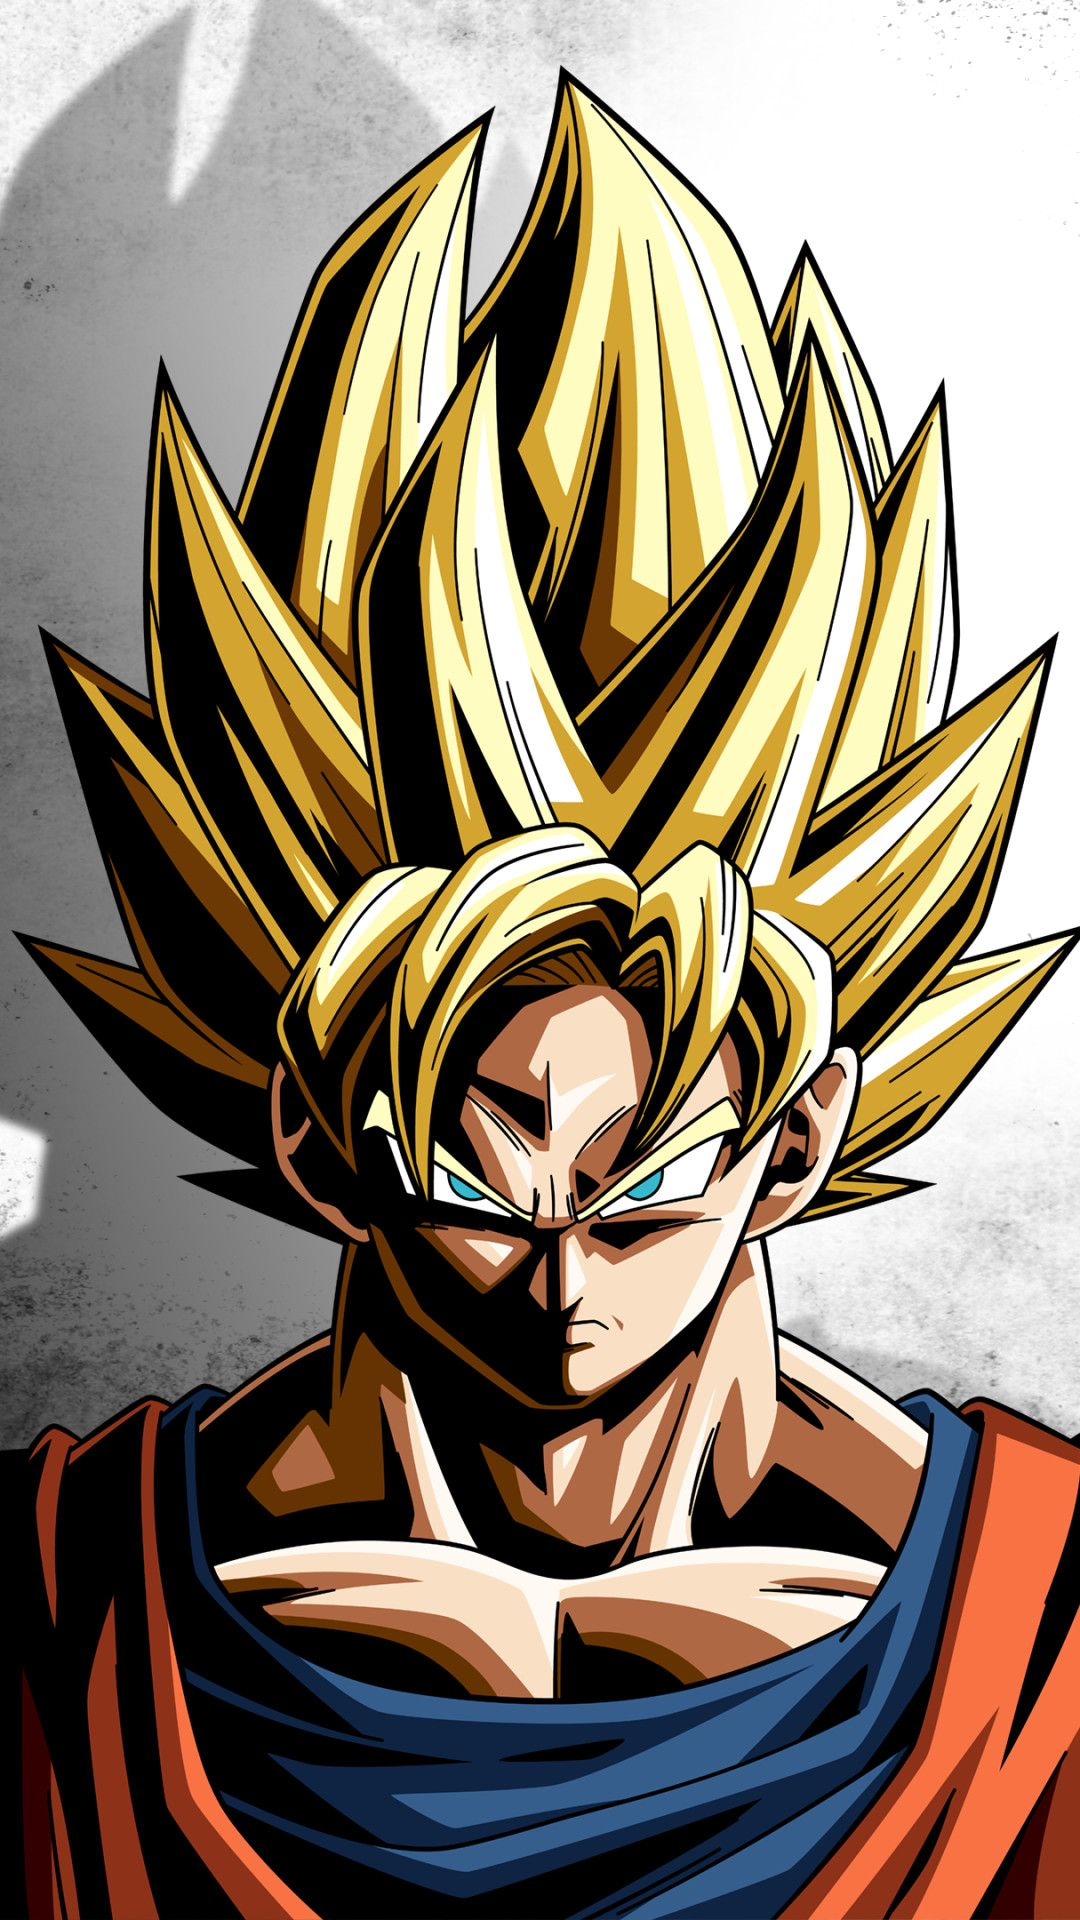 Dragon Ball Z Anime Iphone Wallpapers